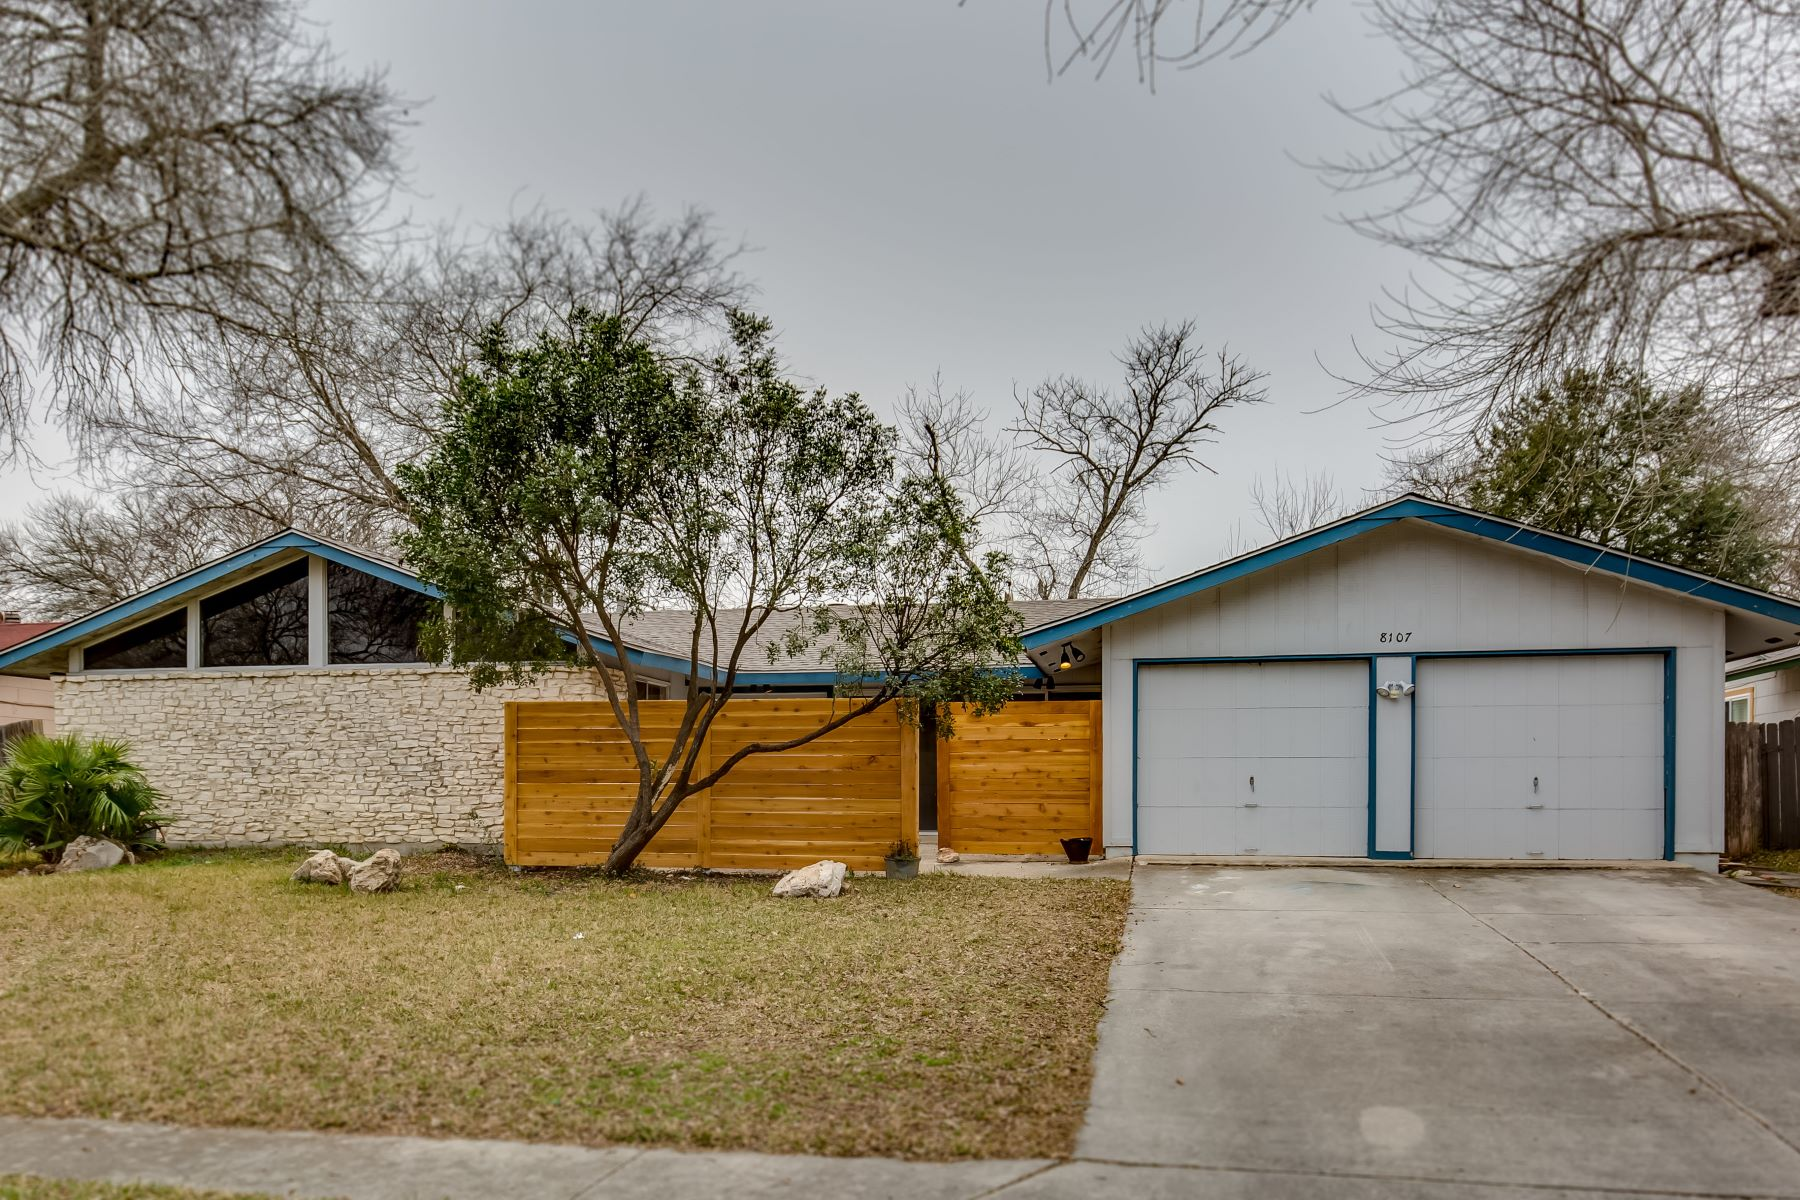 Single Family Home for Sale at Single Story, Cul-De-Sac Home 8107 Cedar Forest, San Antonio, Texas, 78239 United States